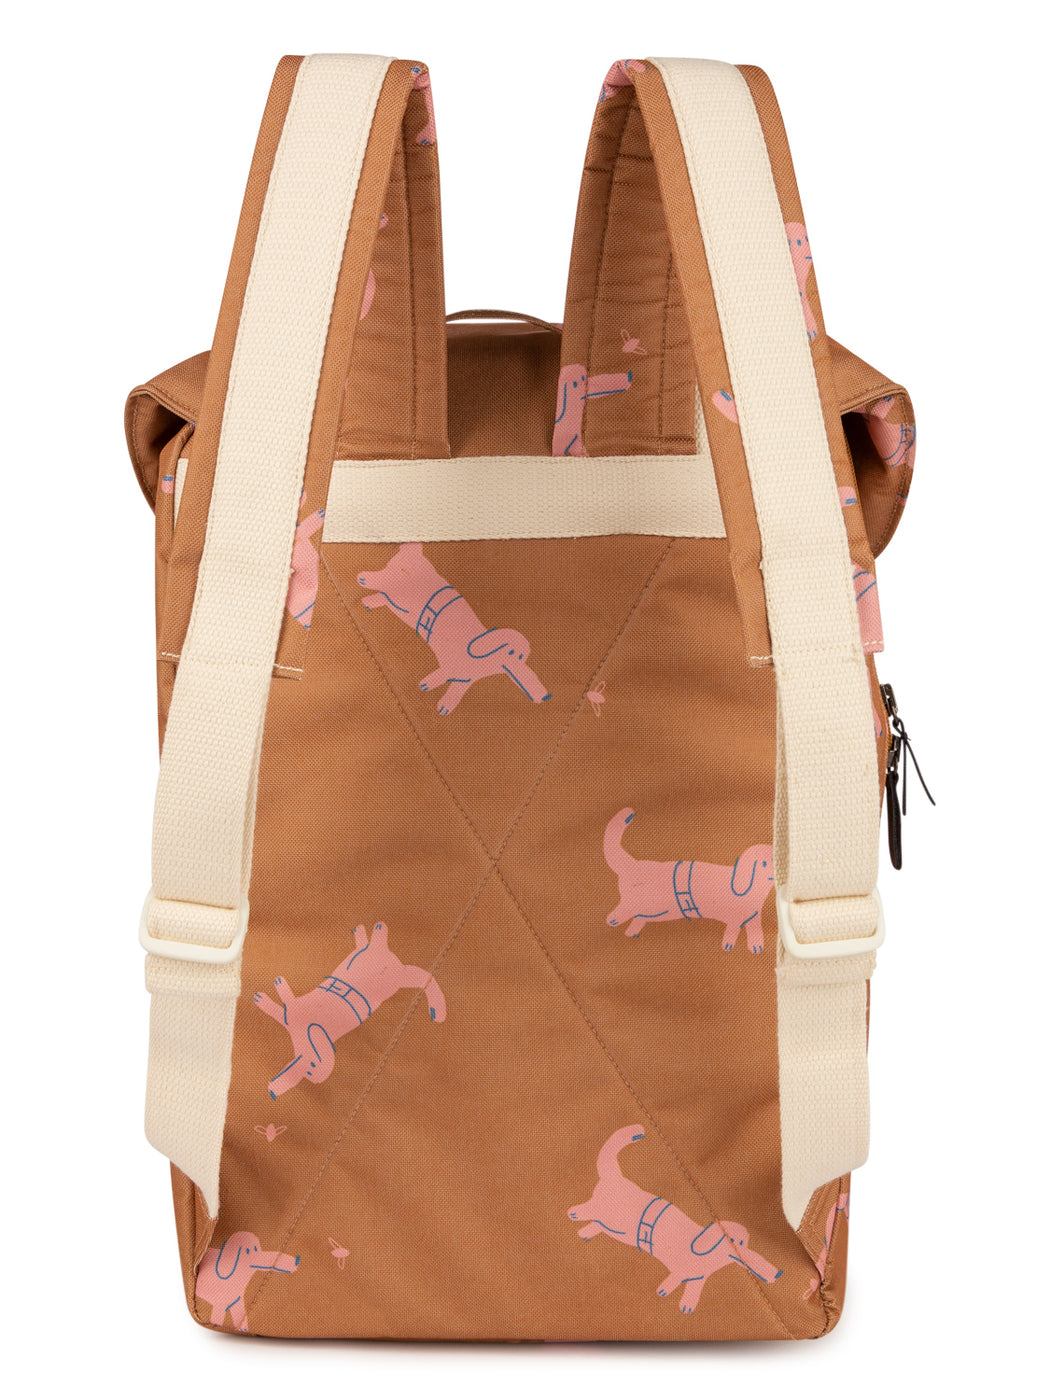 Bobo Choses - Dogs School Bag